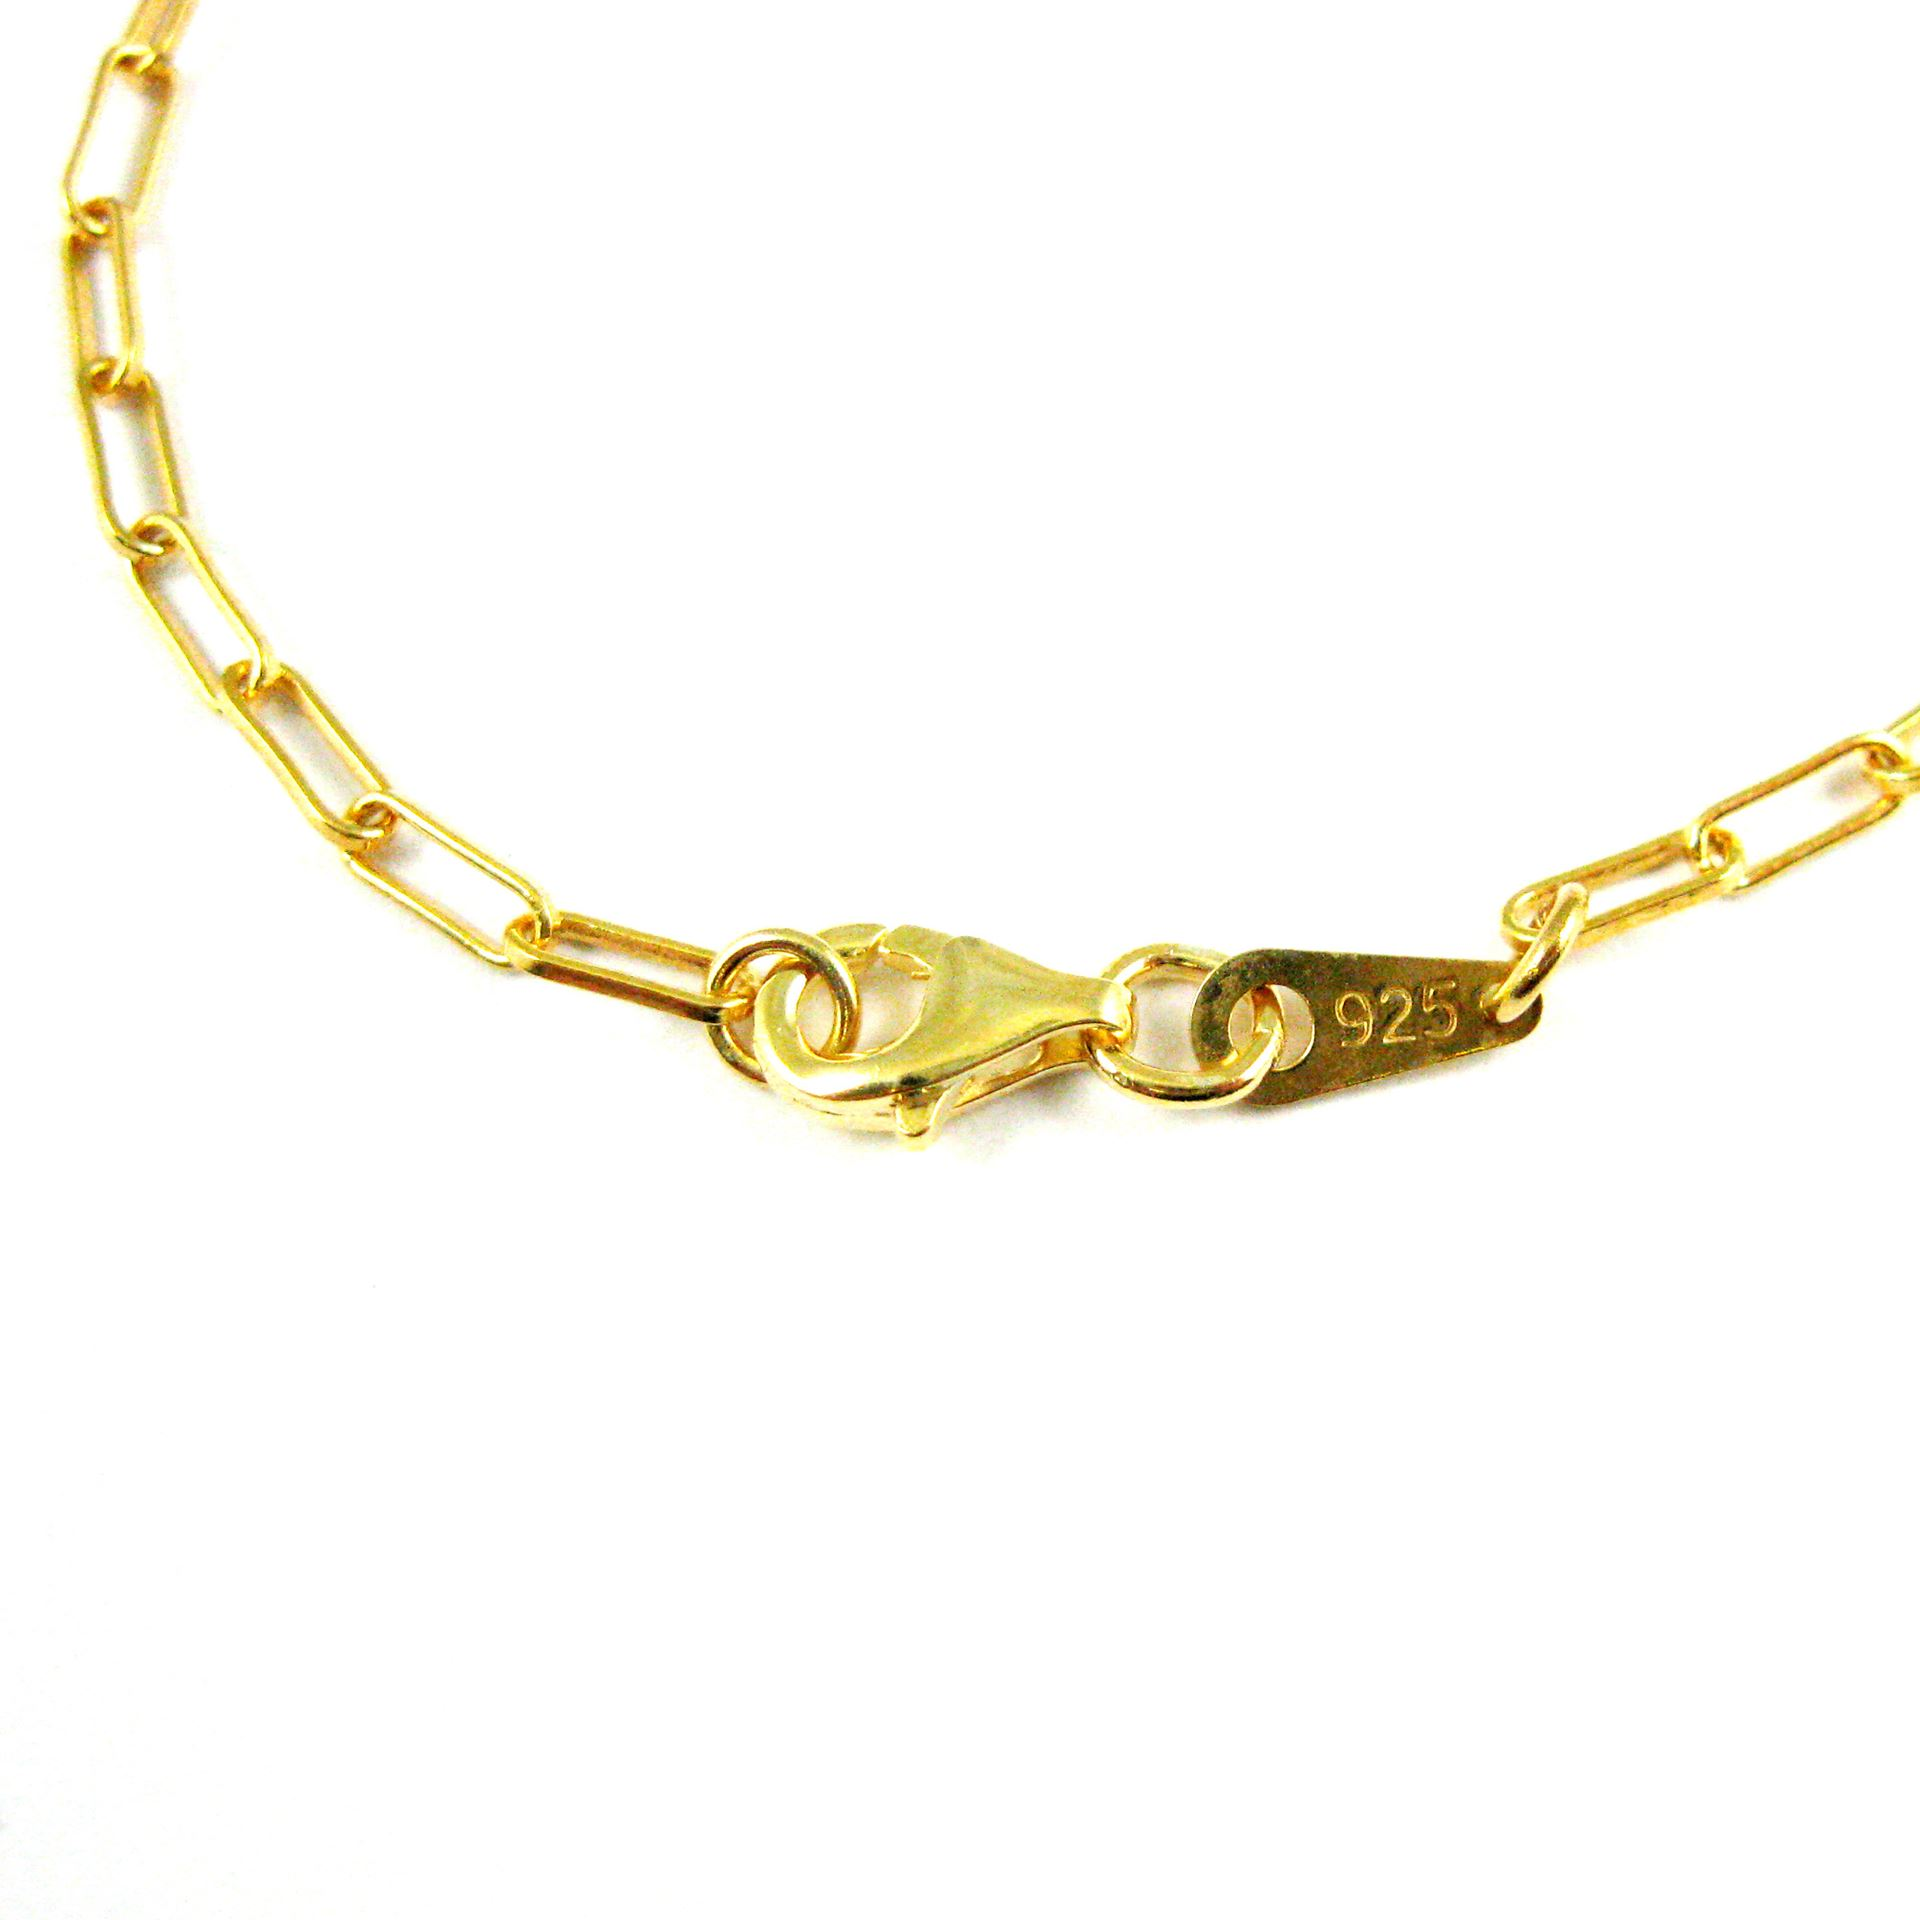 22K Gold plated Sterling Silver Necklace, Bracelet, Anklet - Vermeil-  Rectangle Link -Long Box Chain- 2.5 by 7mm - All Sizes